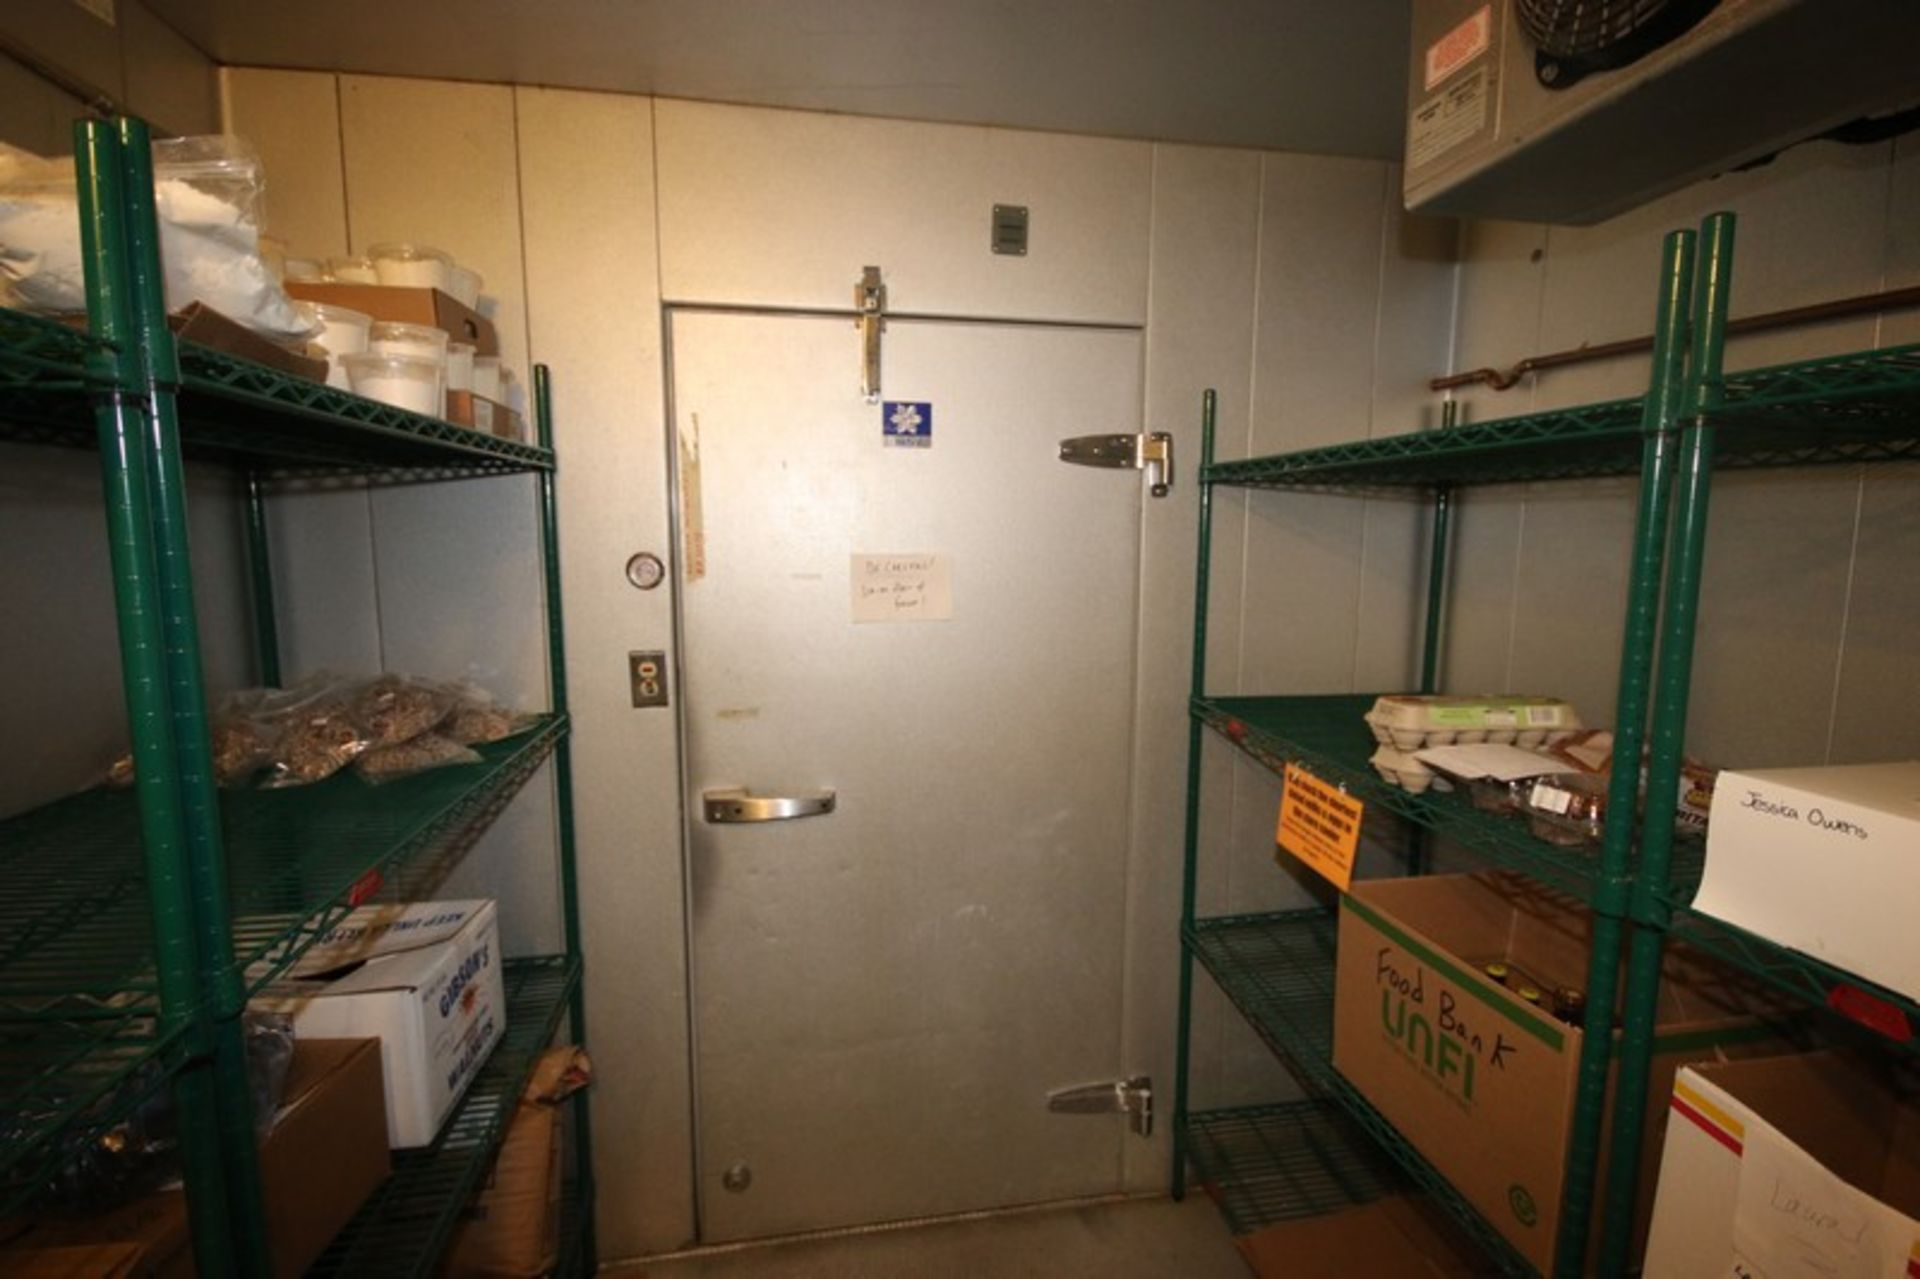 Harford Dual Compartment Walk-In Cooler & Freezer, M/N DR36788W5H8D, S/N XW703D9, Compartment Sizes: - Image 13 of 16